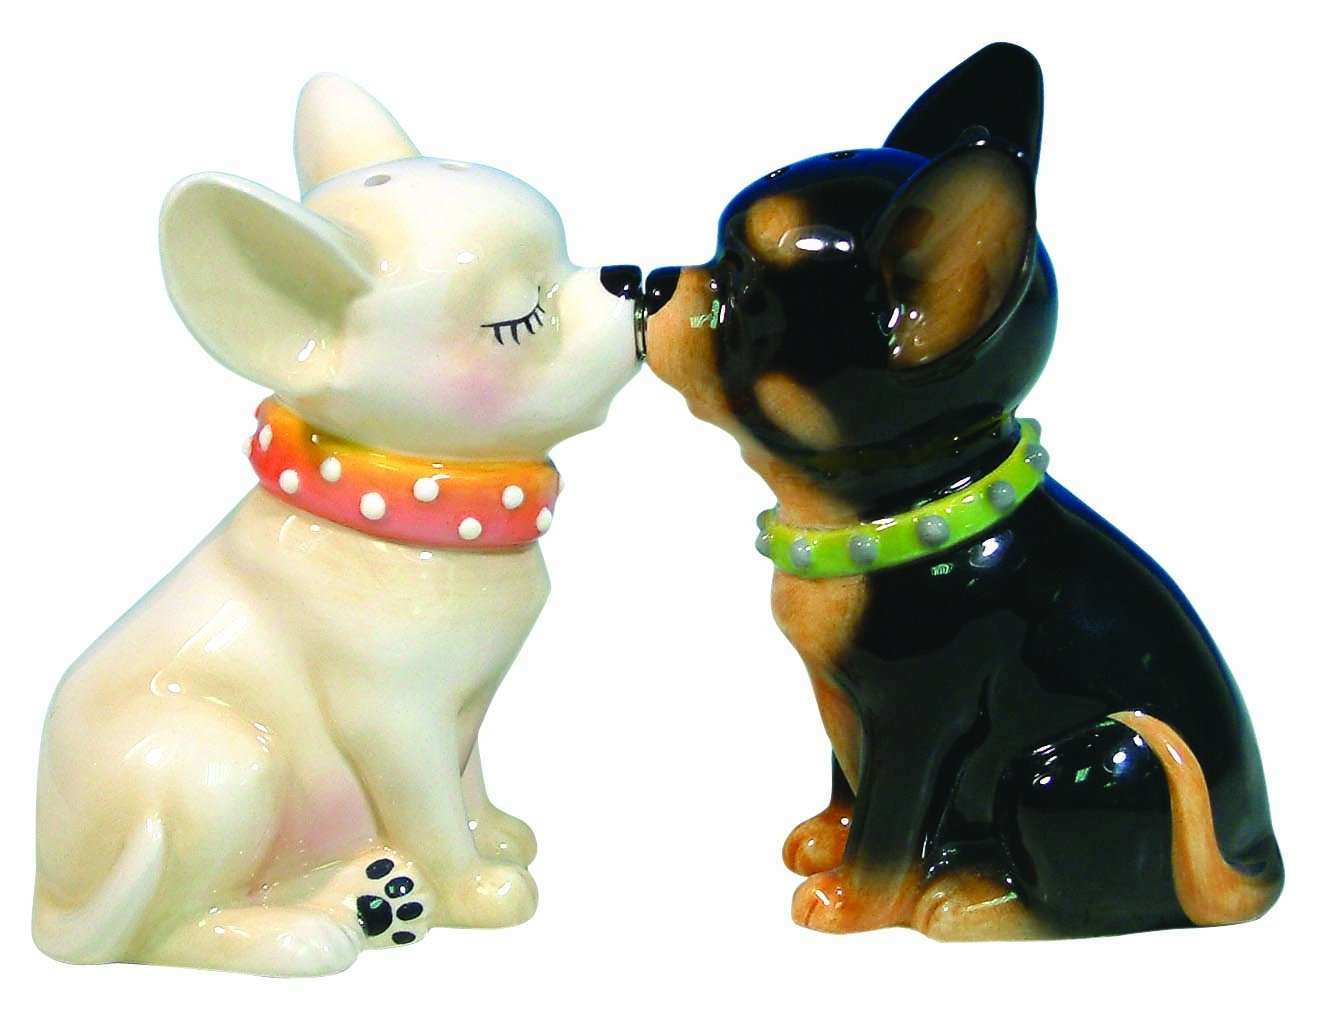 amazoncom westland giftware mwah magnetic chihuahuas salt and  - amazoncom westland giftware mwah magnetic chihuahuas salt and peppershaker set inch chihuahua gifts kitchen  dining